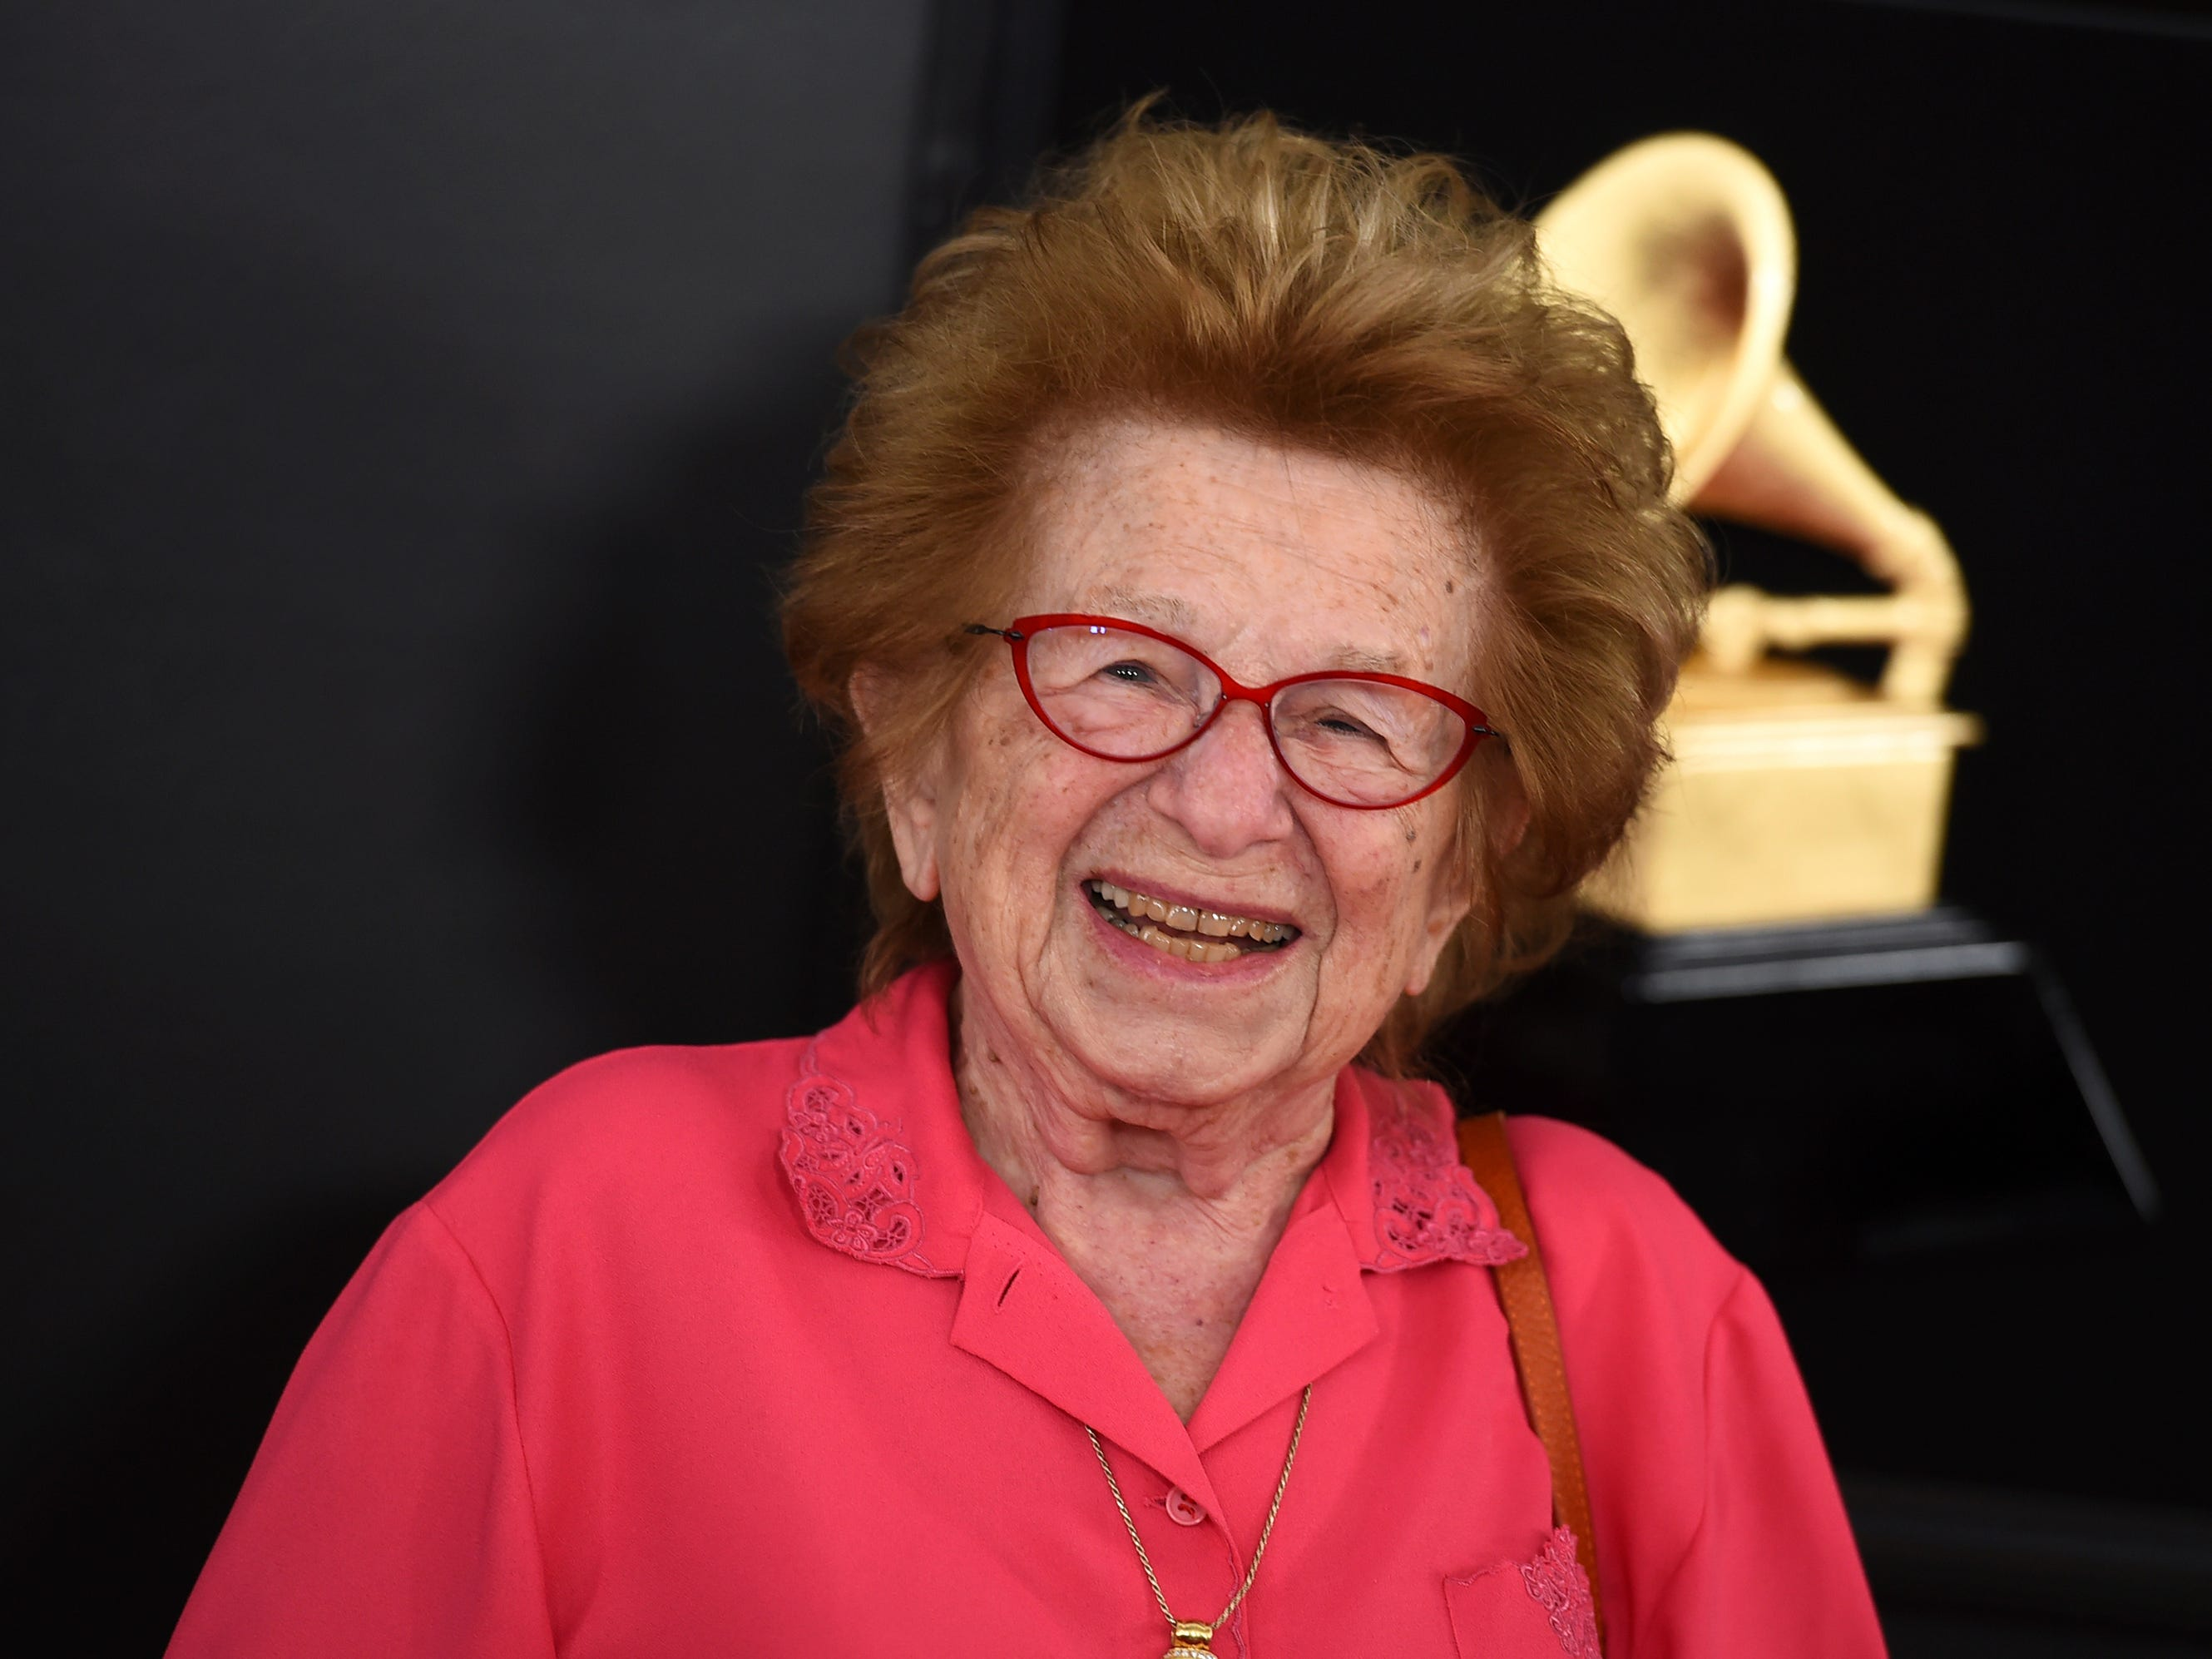 Ruth Westheimer arrives at the 61st annual Grammy Awards at the Staples Center on Sunday, Feb. 10, 2019, in Los Angeles.